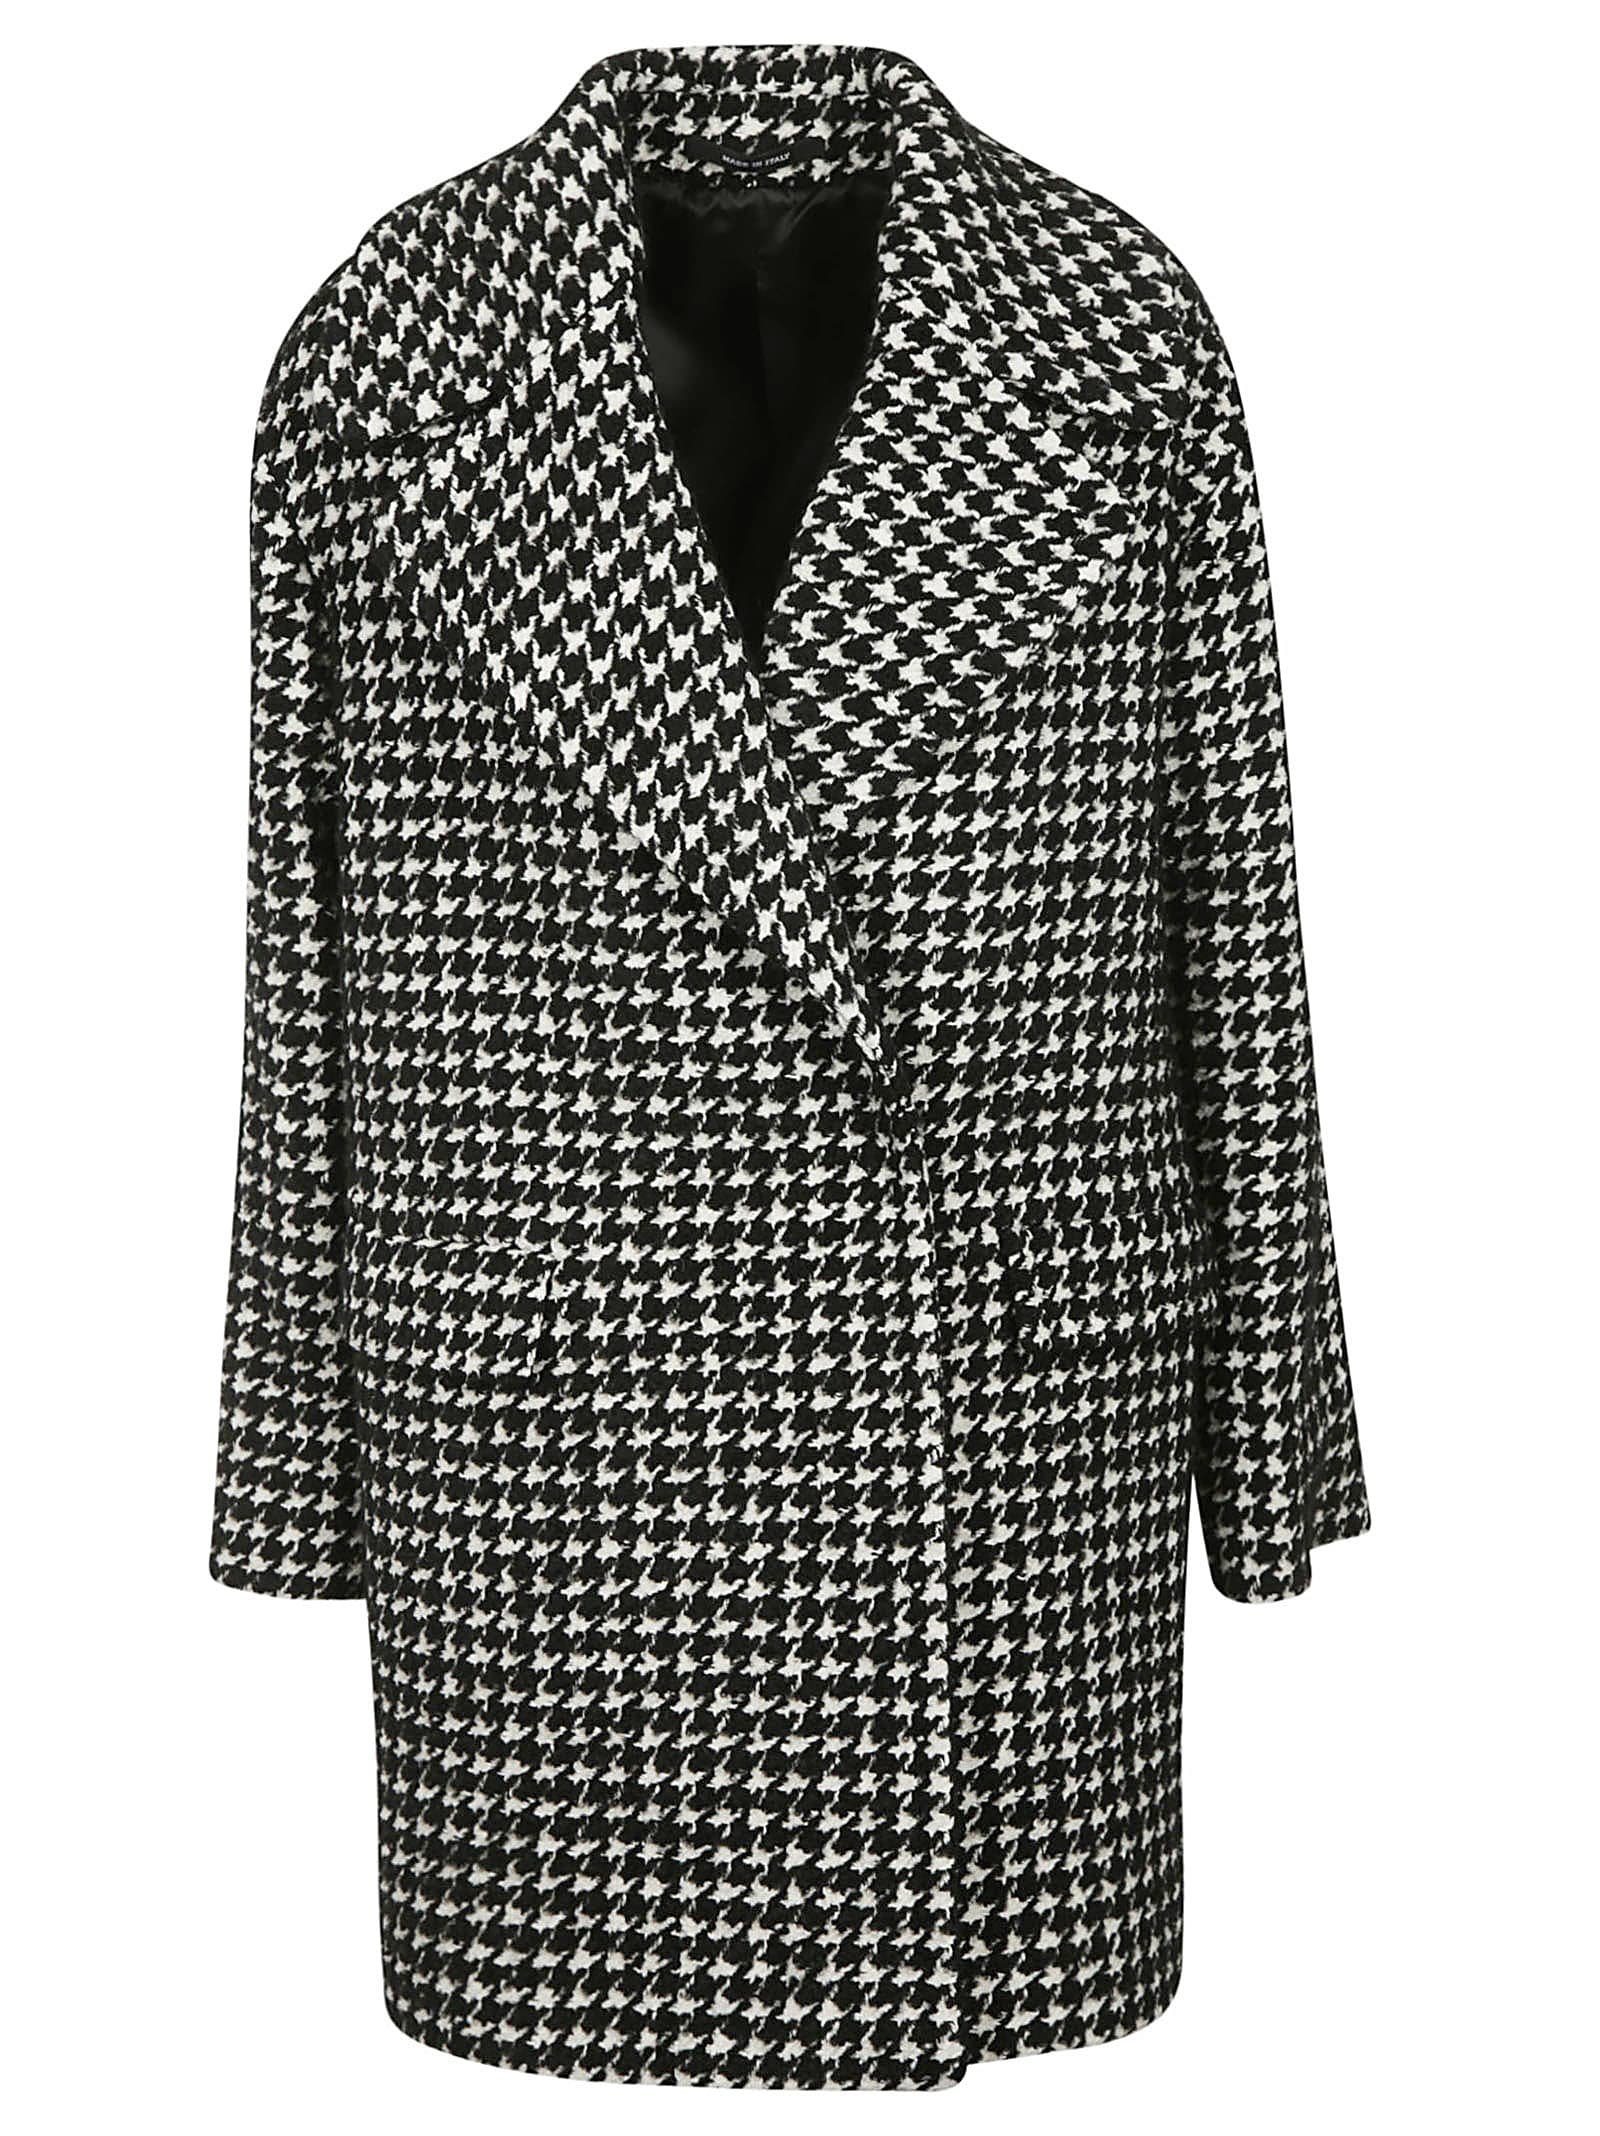 Tagliatore Patterned Coat